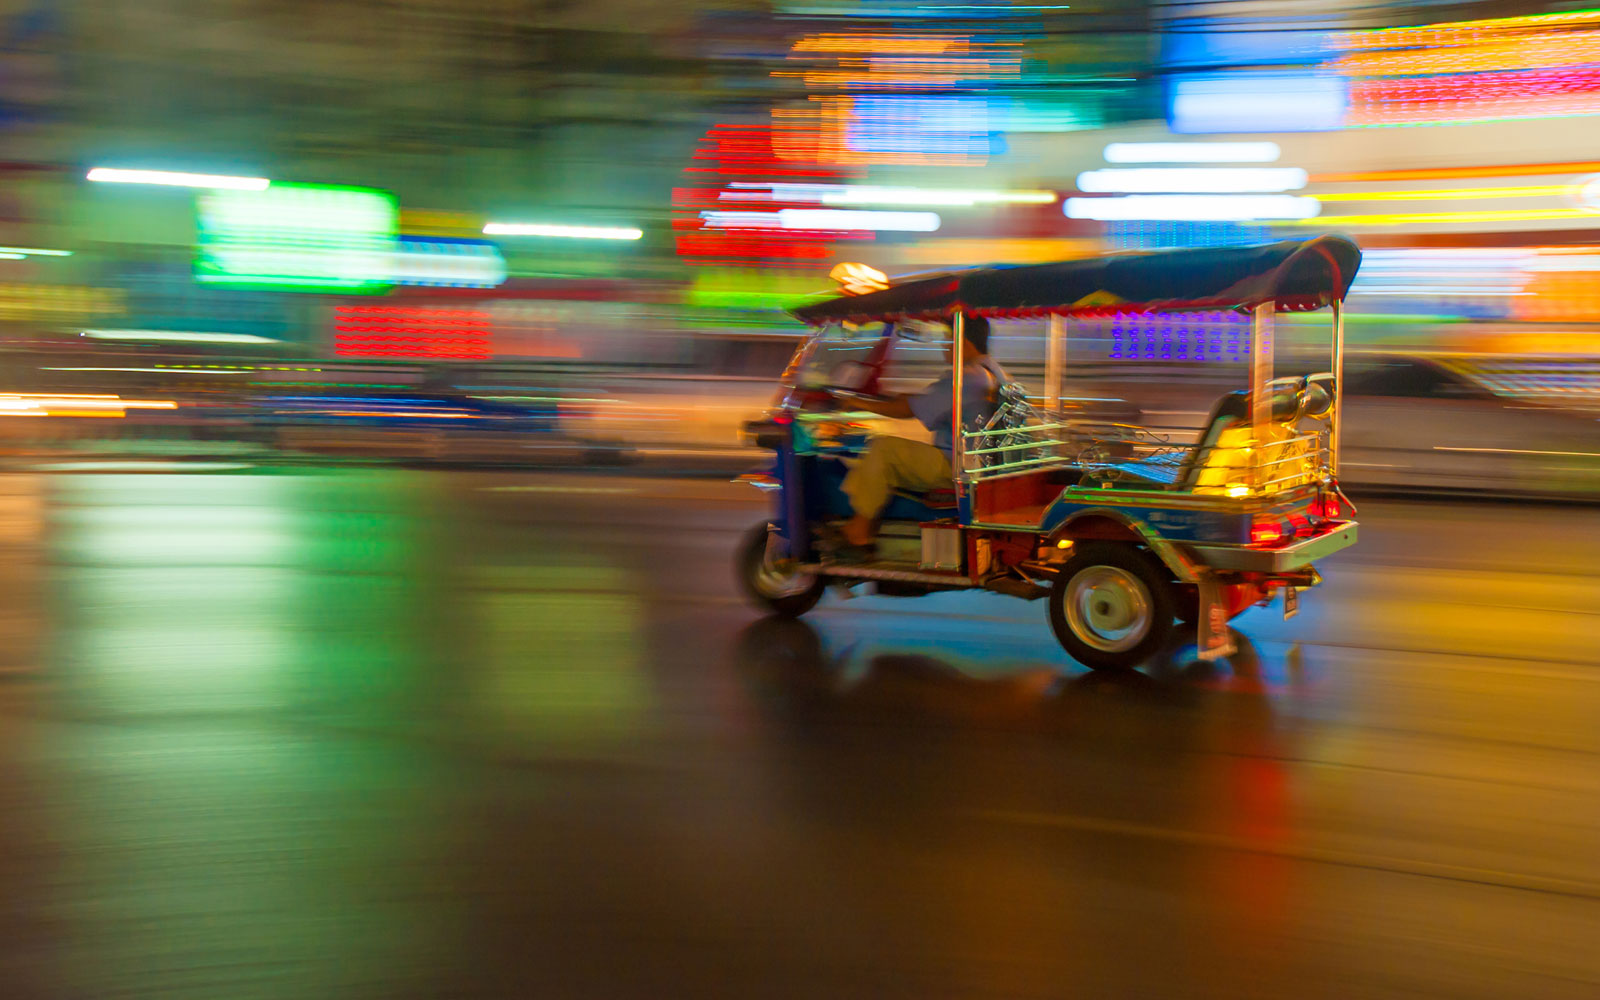 rickshaw_panning_movement_transport_thailand_experience_holiday_fleewinter